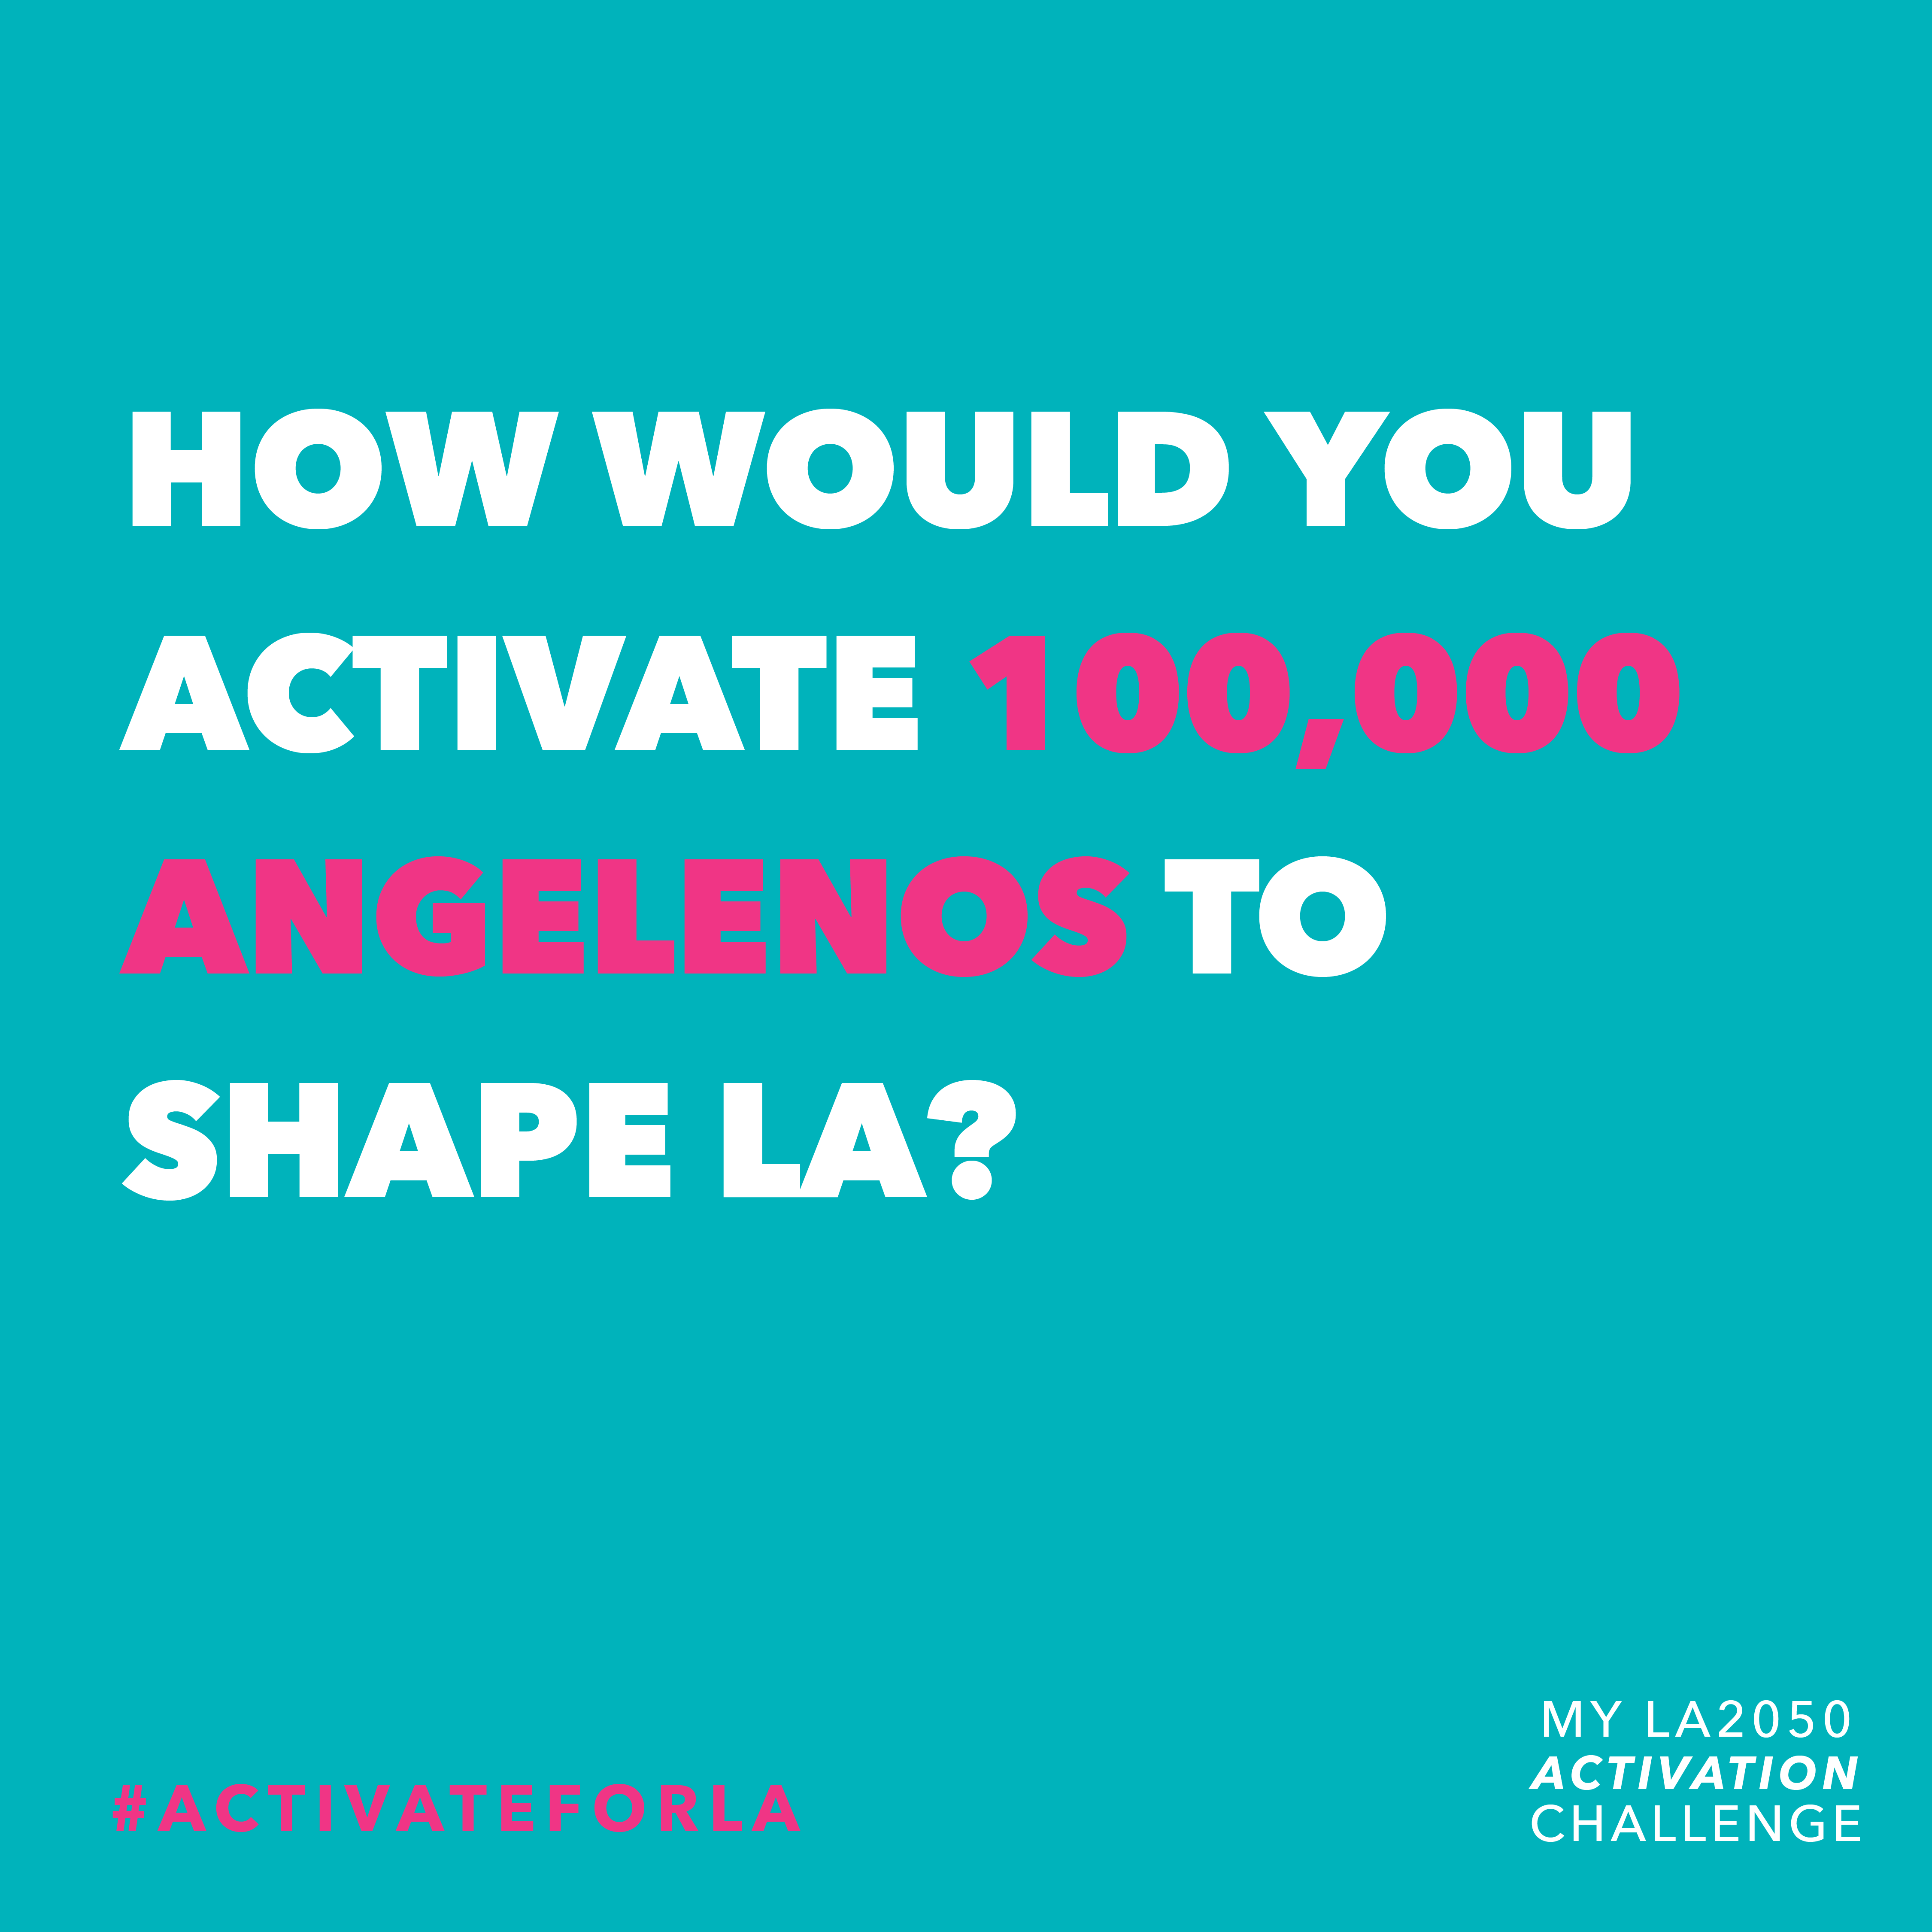 My LA2050 Activation Challenge